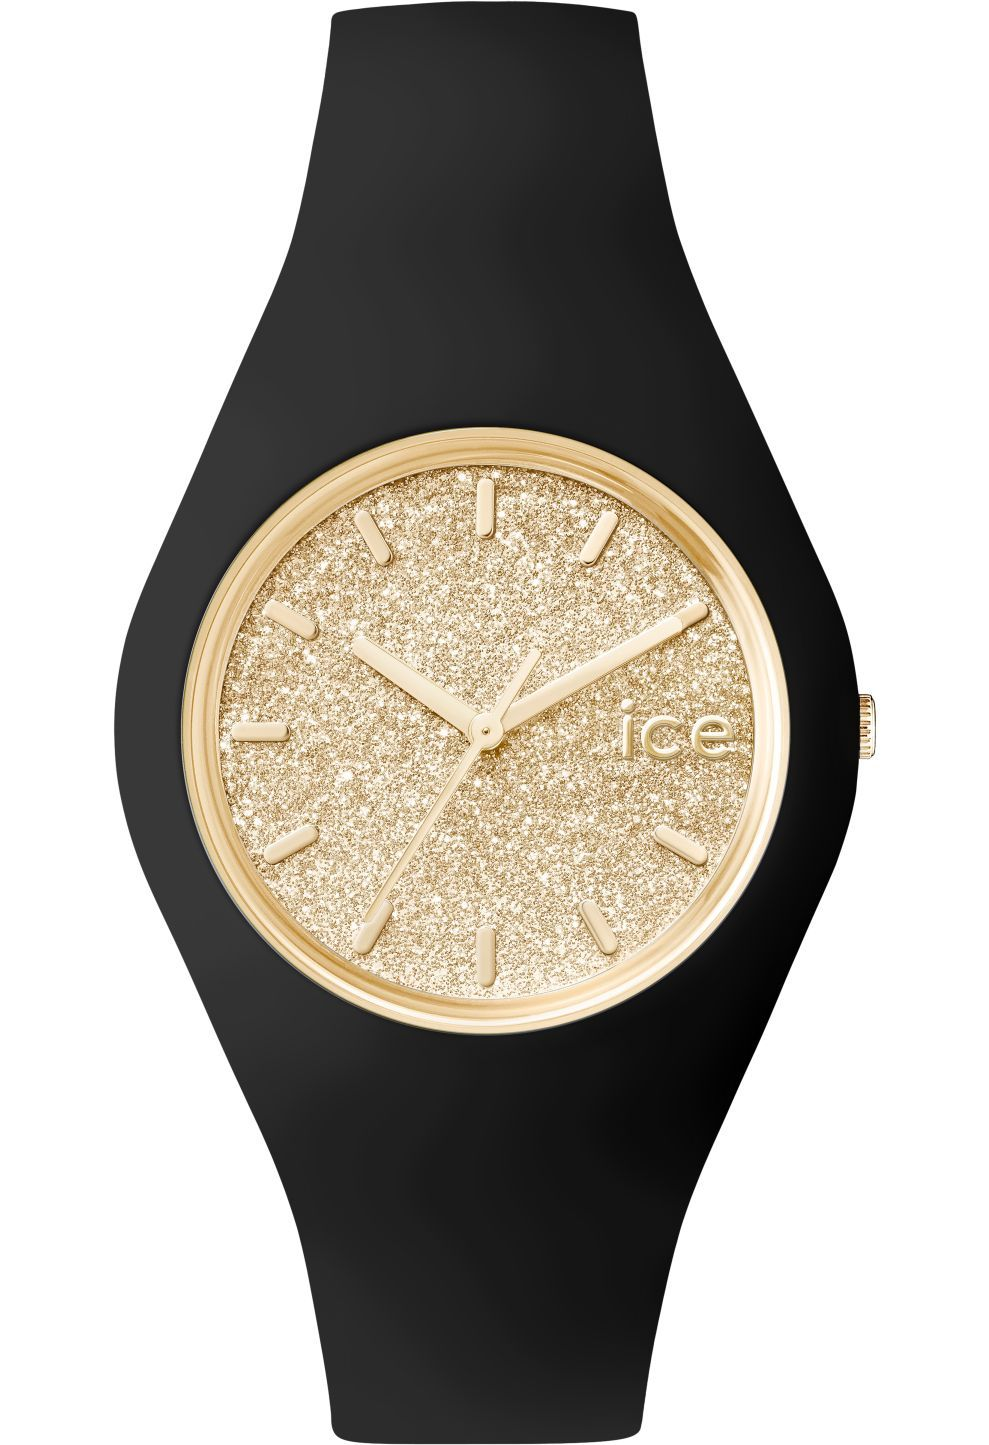 Montre ICE-Glitter - Black Gold - Unisex   Watch obsession   Ice ... 0f156c89ff31